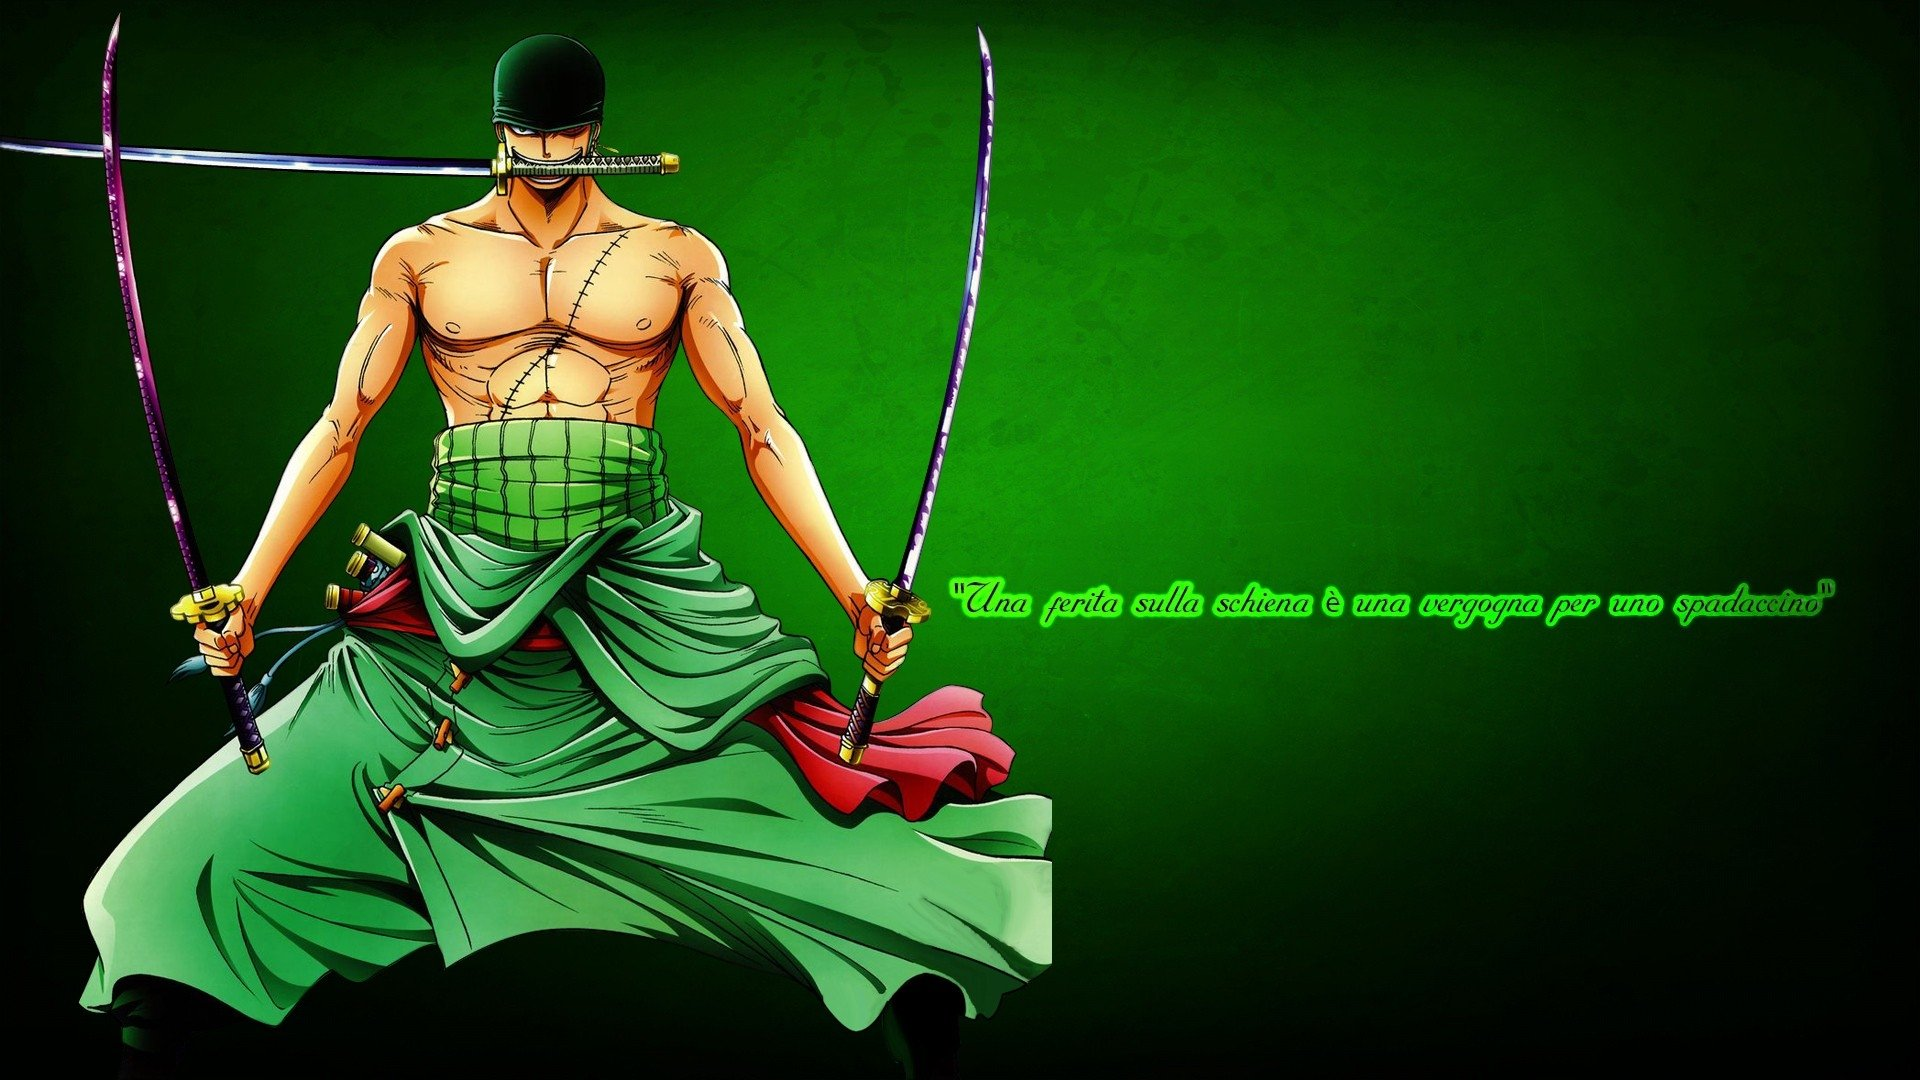 Roronoa Zoro Santōryū Hd Wallpaper Background Image